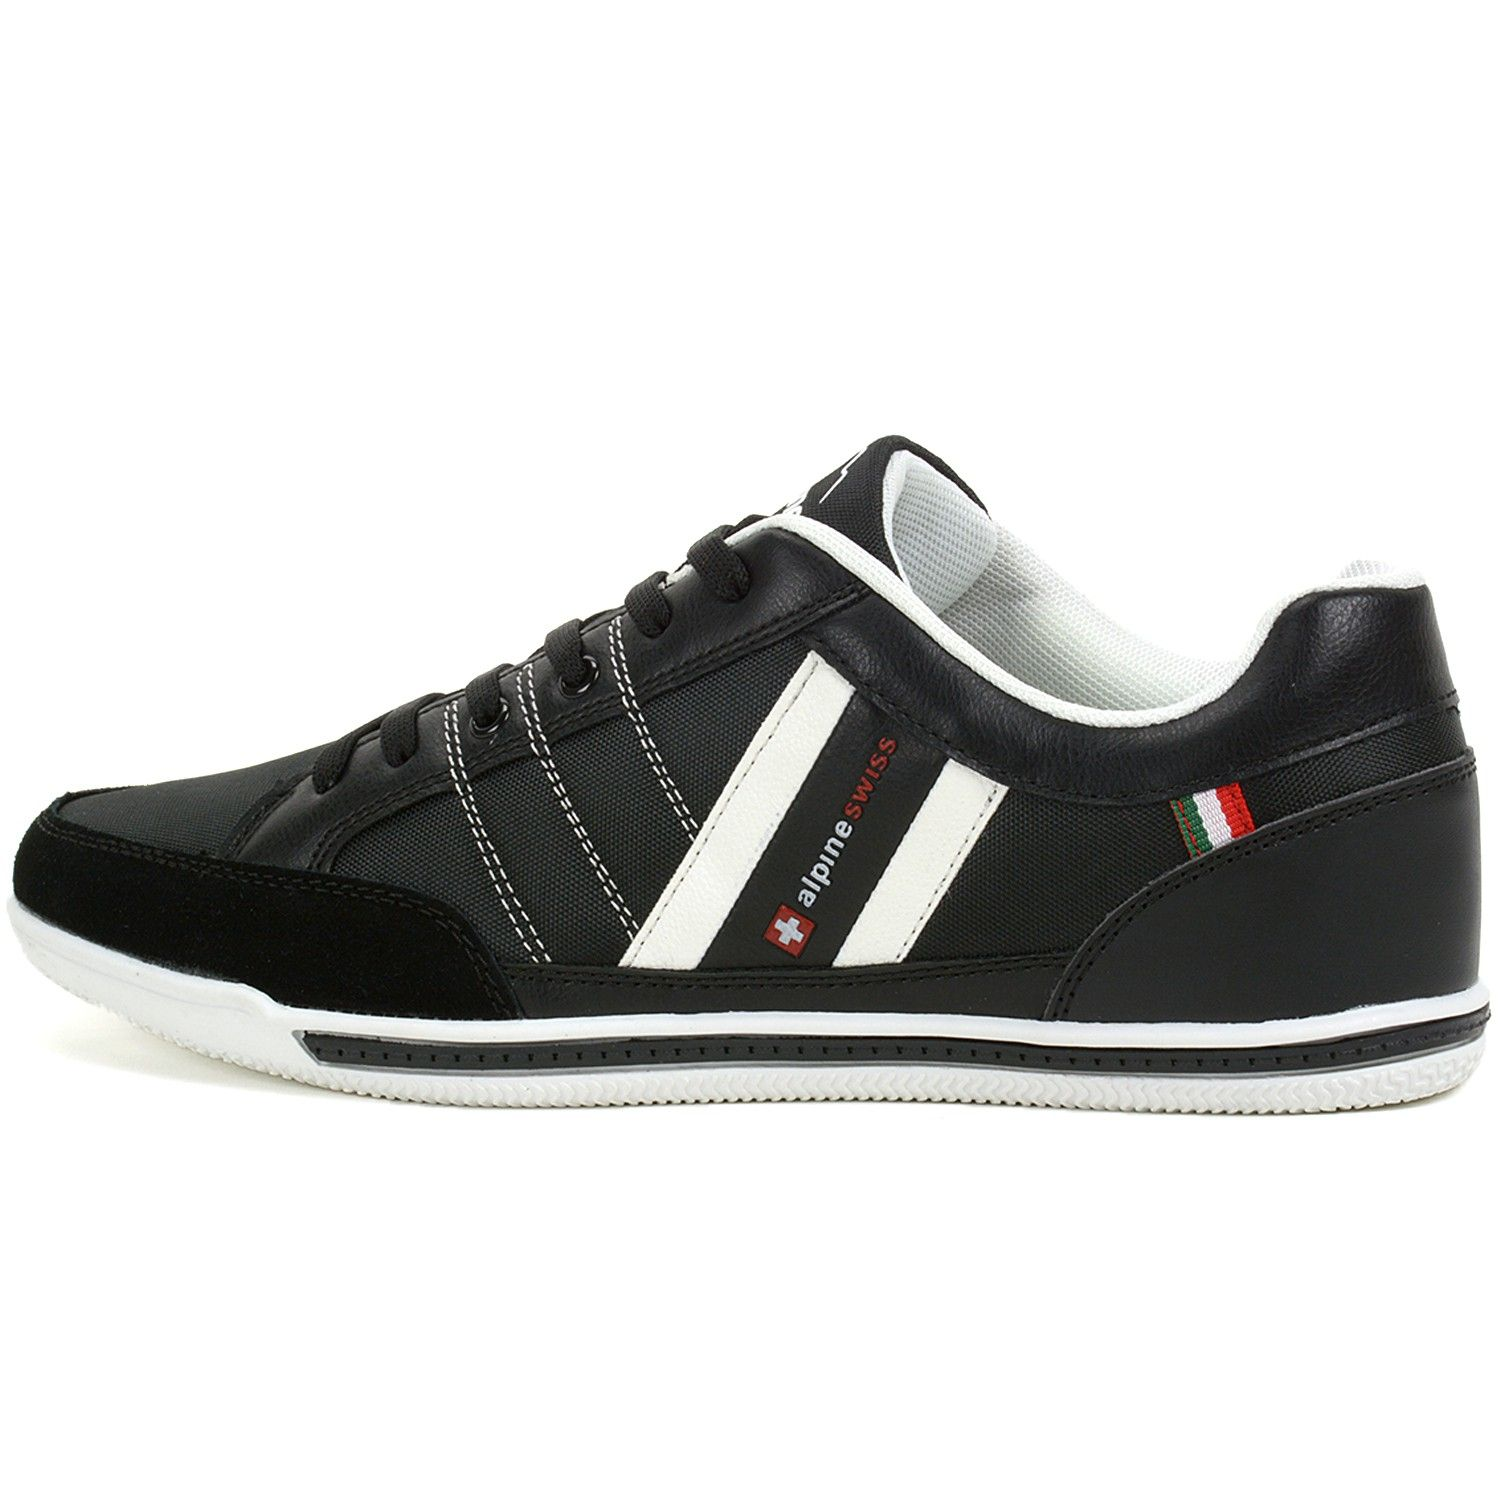 6d80d7a763c7 Alpine Swiss Stefan Mens Retro Fashion Sneakers Tennis Shoes Casual Athletic